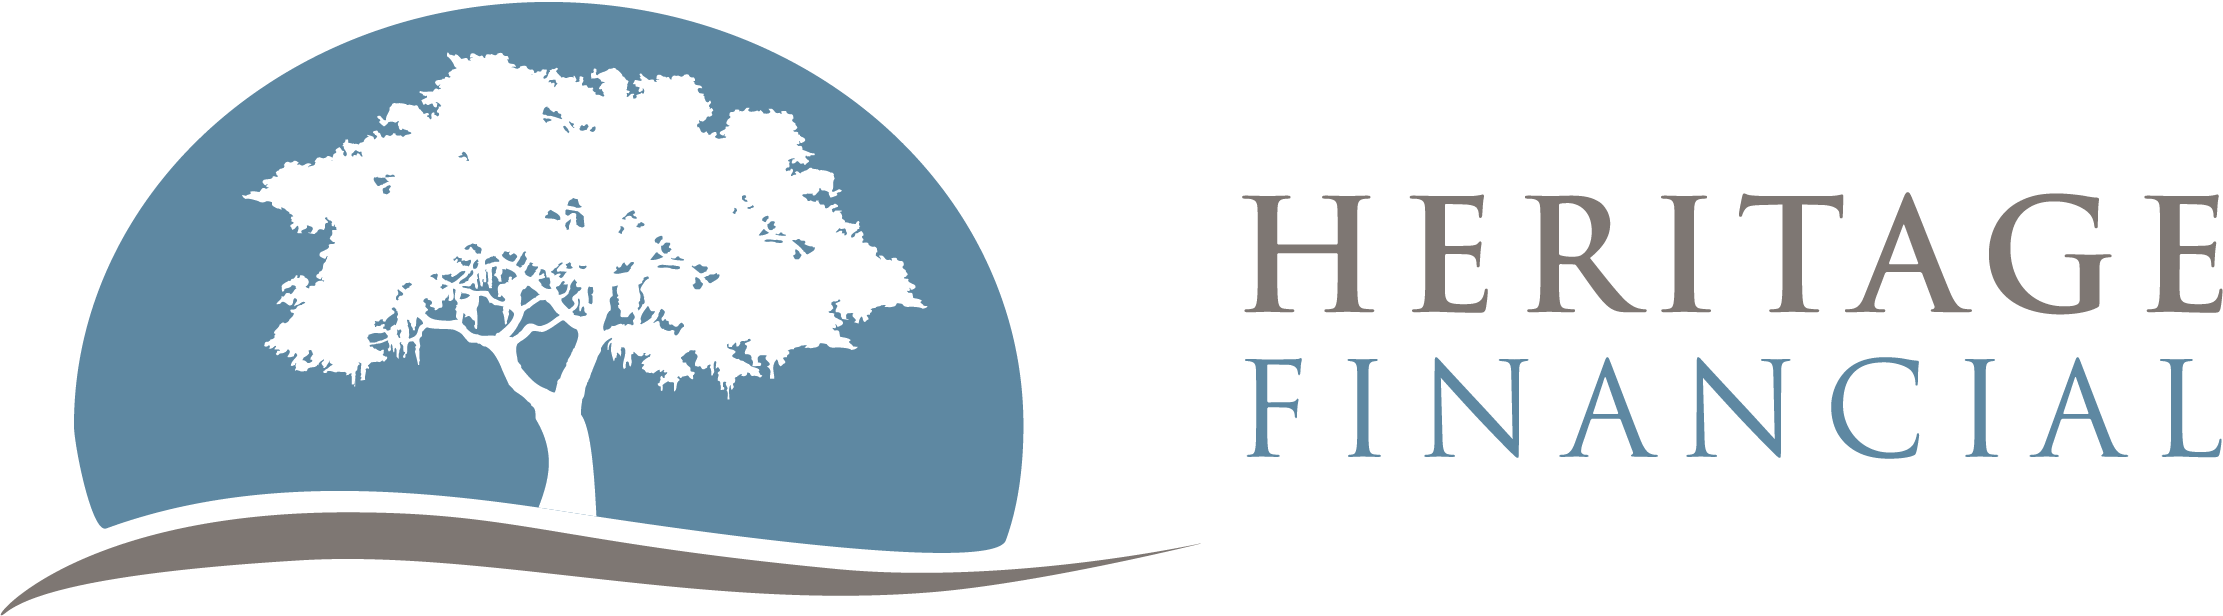 Heritage Financial Partners